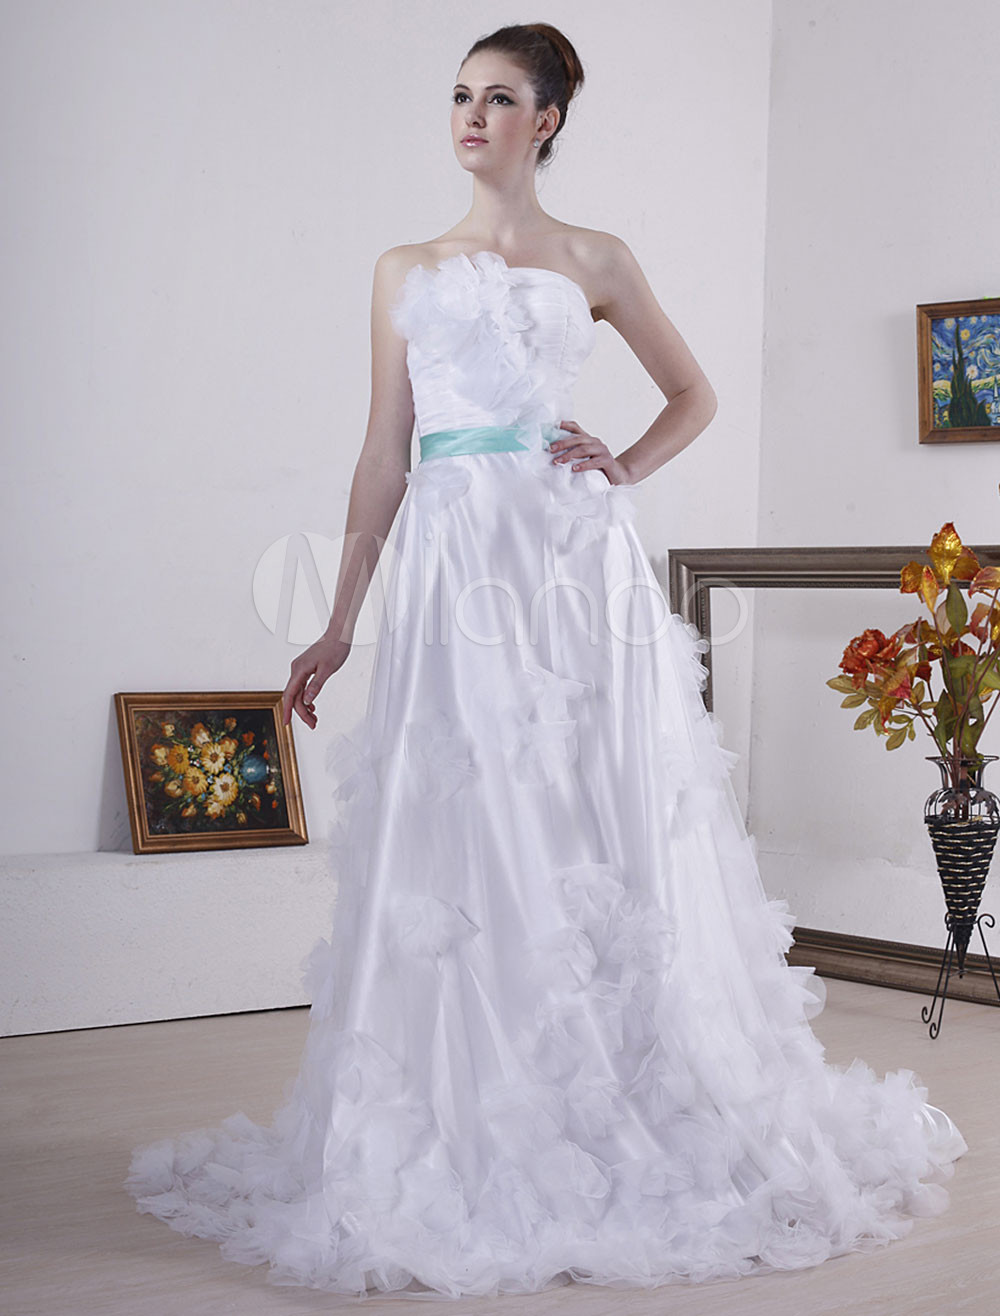 Beautiful White Chiffon Satin Wedding Dress